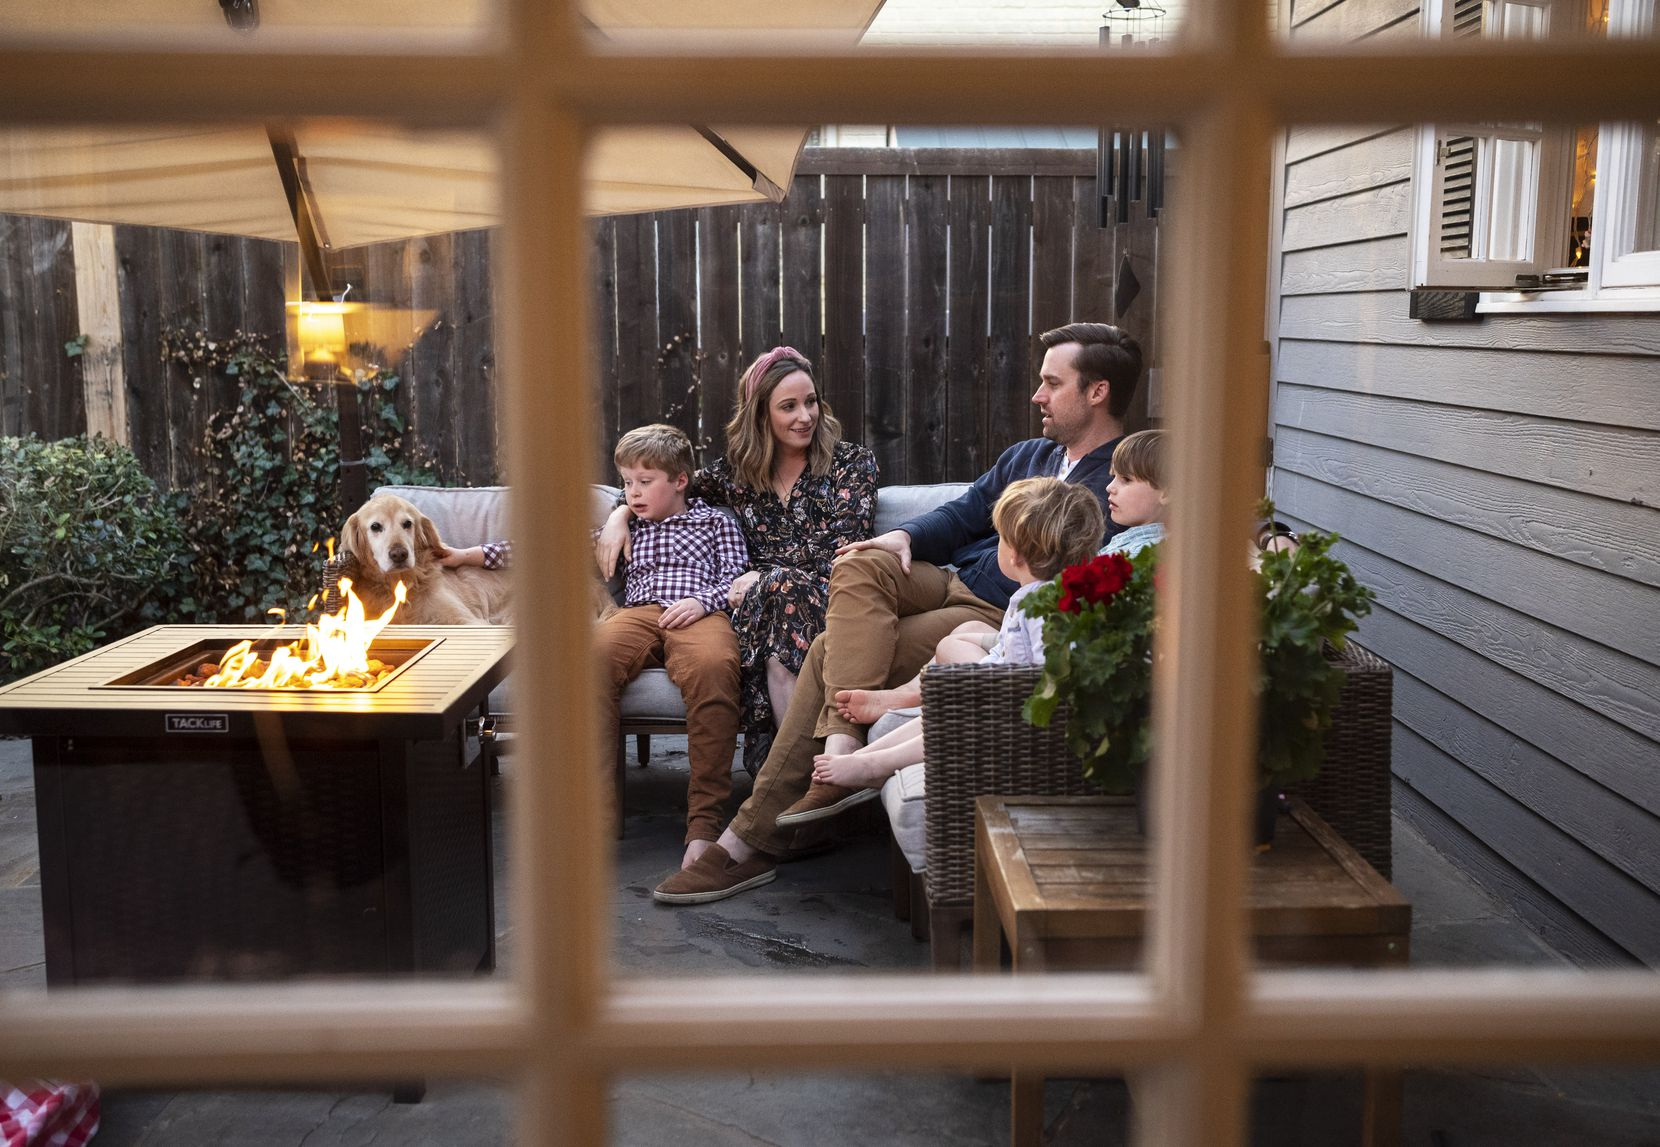 Jessica Barfield, left, and her husband Blake Barfield, with their sons, Henry, 7, left, Wade, 6, and Brooks, 2, far-right, in the backyard porch of their home in Dallas, on Monday, March 08, 2021. The Barfields ate many meals in the back yard to get their three sons outside of the house after spending so much time indoors at the start of the pandemic. The Barfields would also leave their groceries out on the front porch to air out before wiping them down or washing.